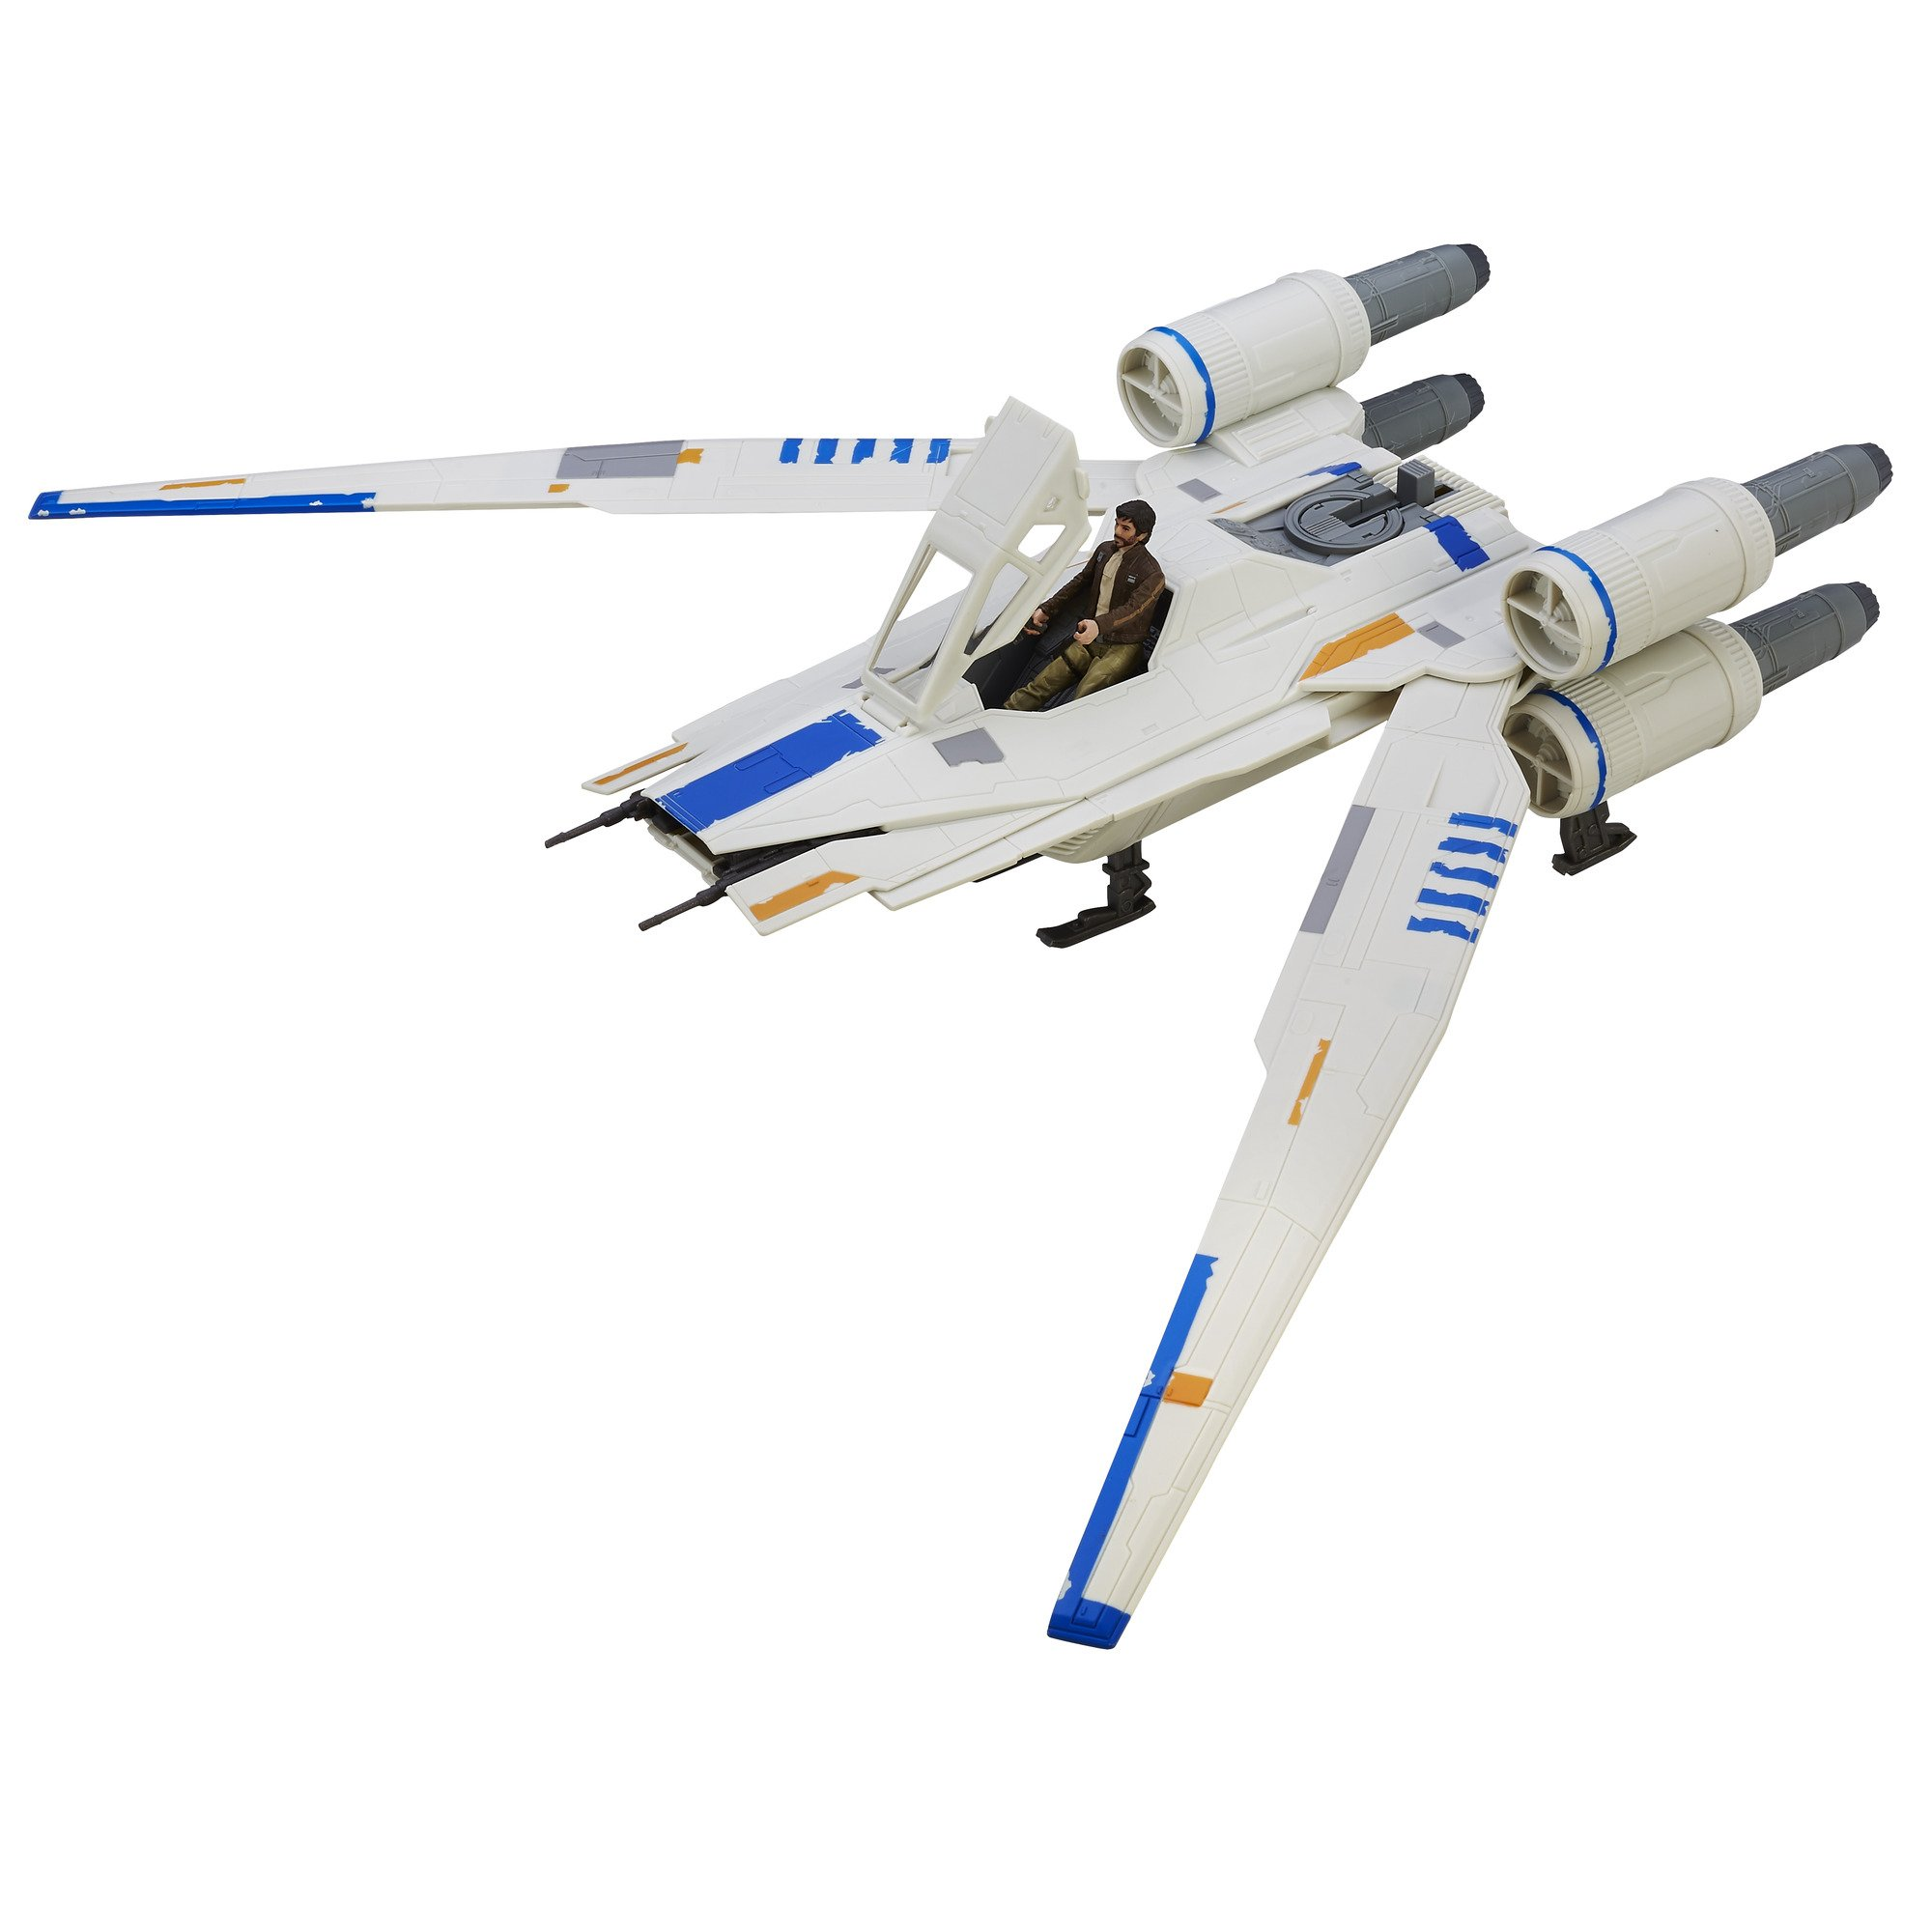 Star Wars: Rogue One Rebel U-Wing Fighter by Star Wars (Image #3)